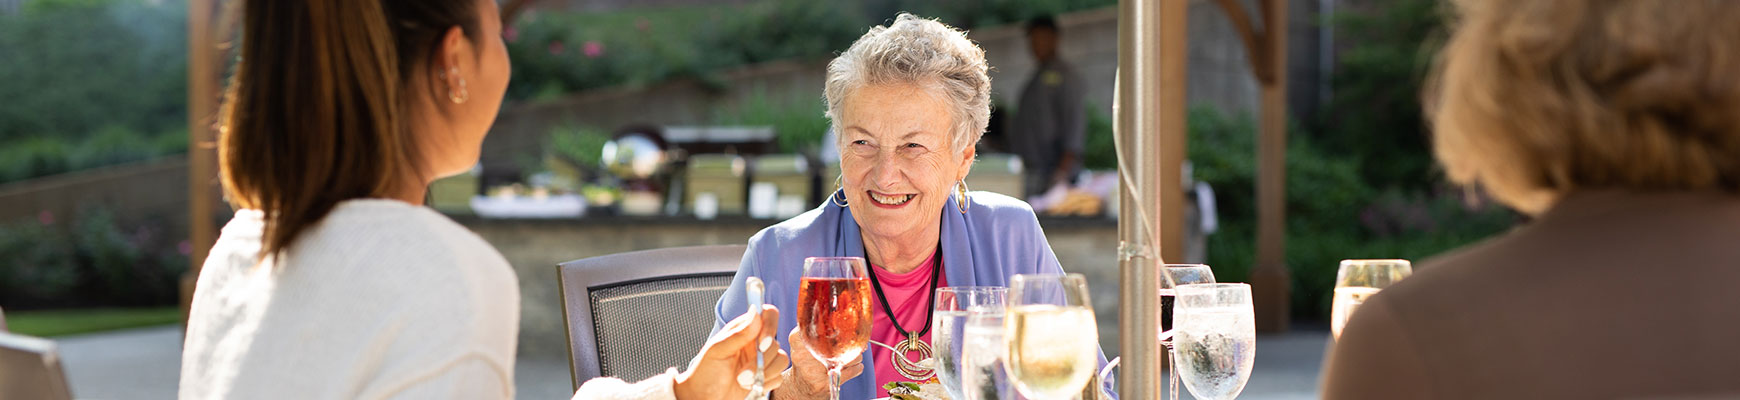 Seniors enjoy wine with their meal on the outdoor patio